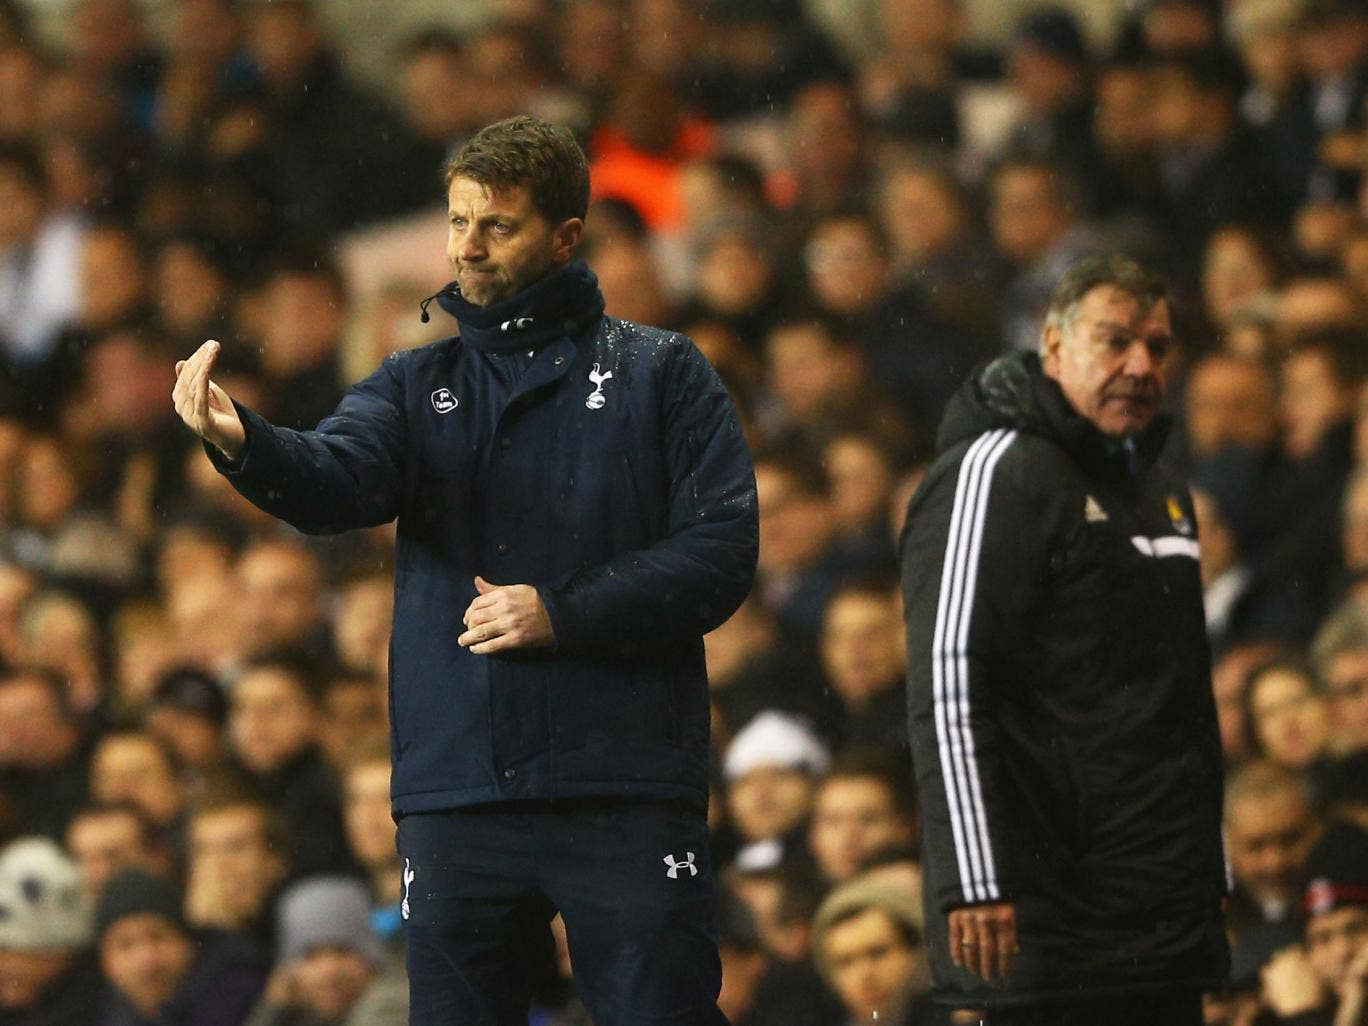 Tim Sherwood joked Spurs have too many players. 'It's 15-a-side in training,' he said